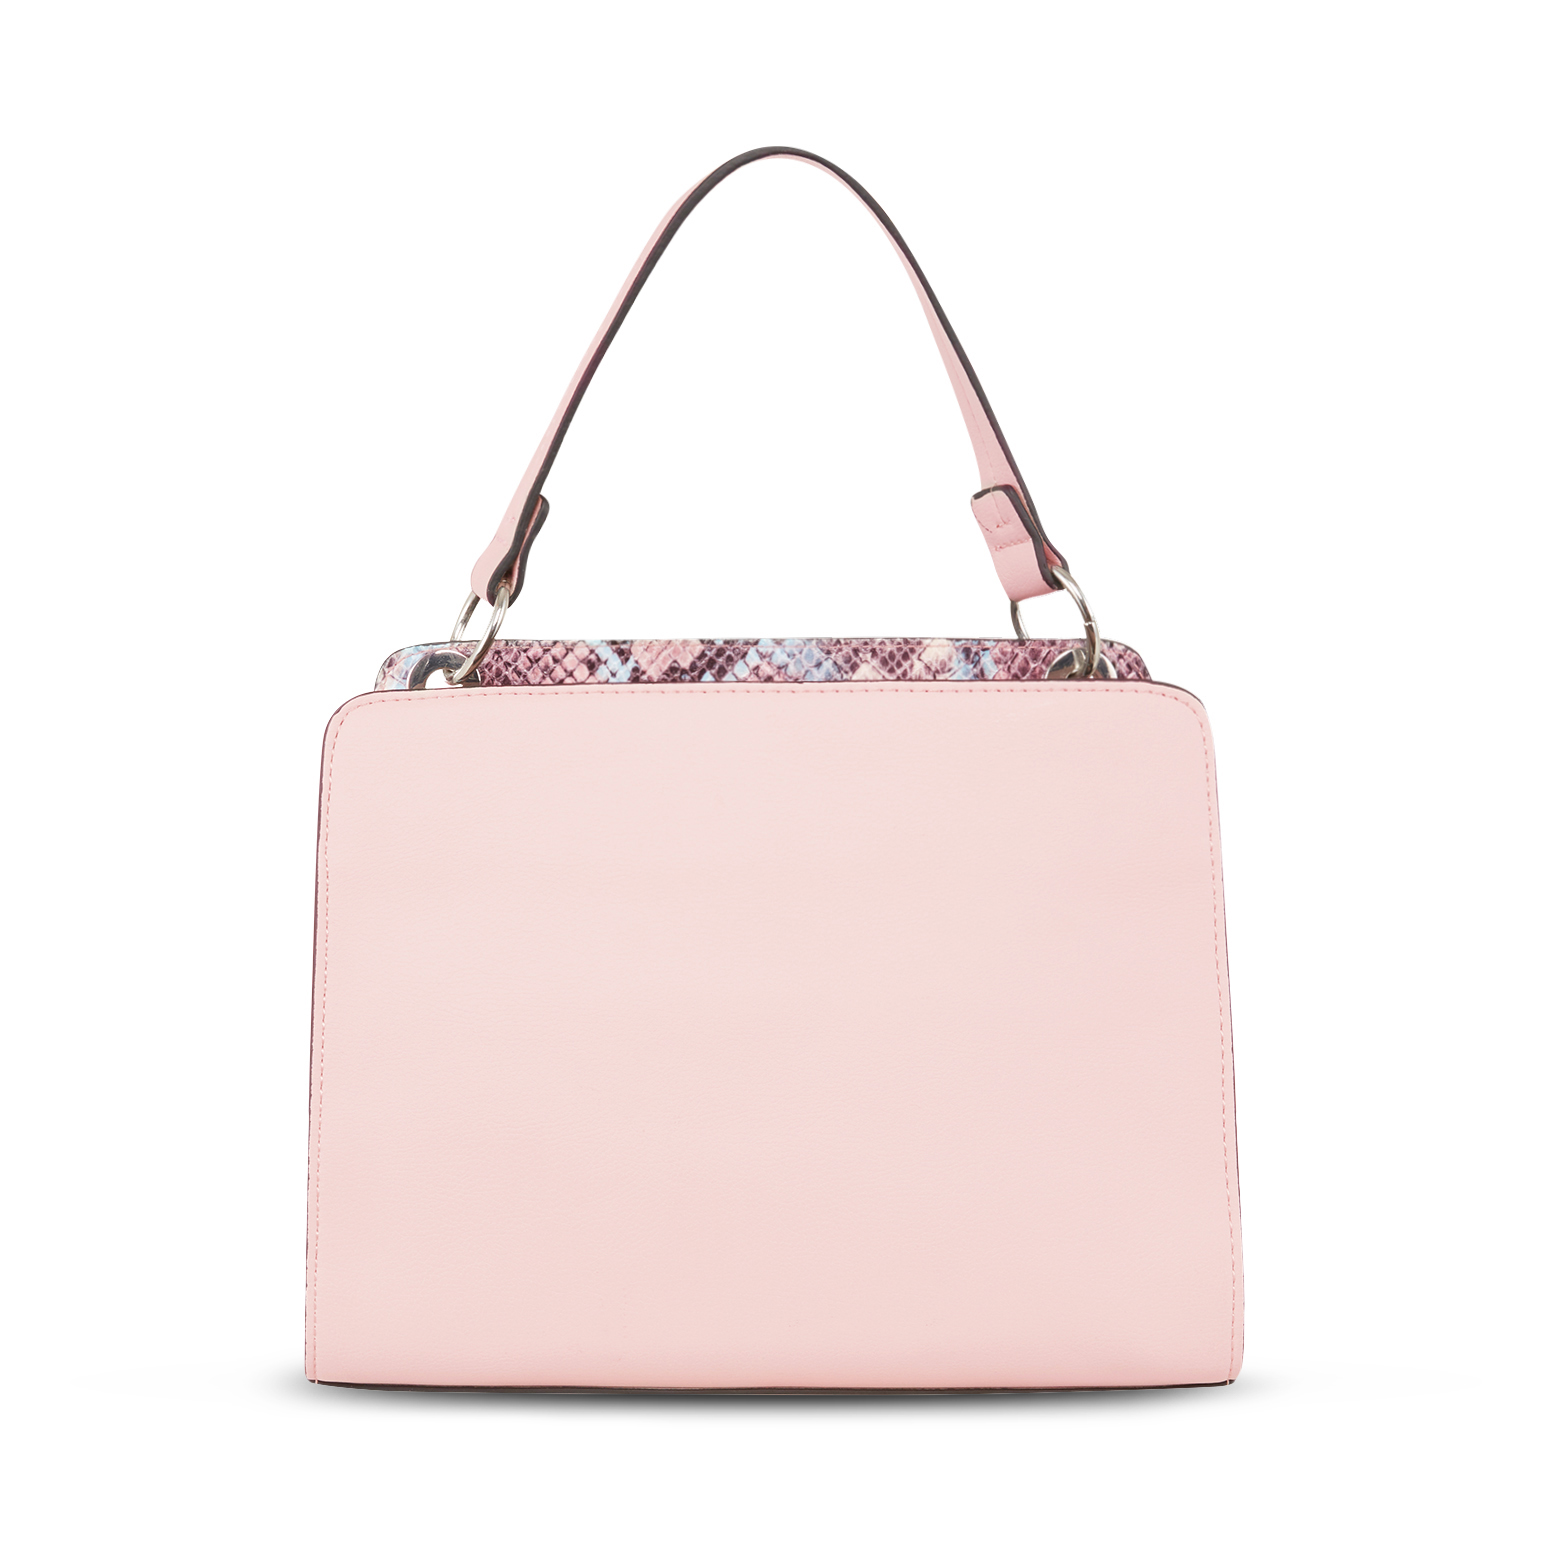 Handbag - rose, ROSE COMB, hi-res